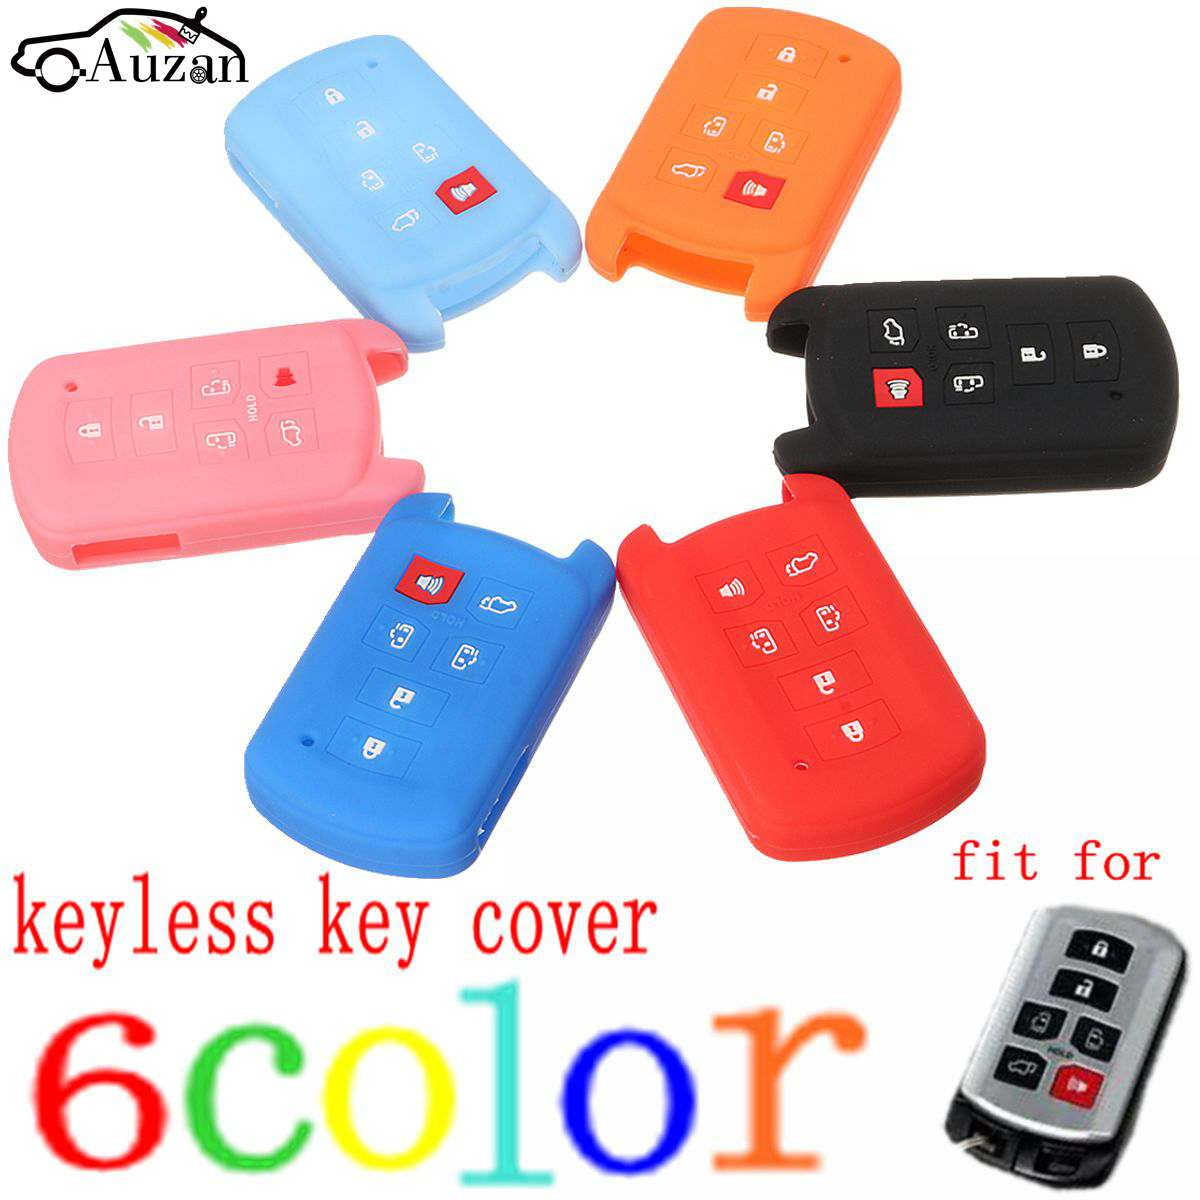 HPiano Ford Car Key Cover Hand Sew Line Cover Protector Case Skin Jacket fit for FORD 3 Button Smart Remote Key Fob Heavy Duty PU Leather Protective Key Fob Cover for Ford 3 Button